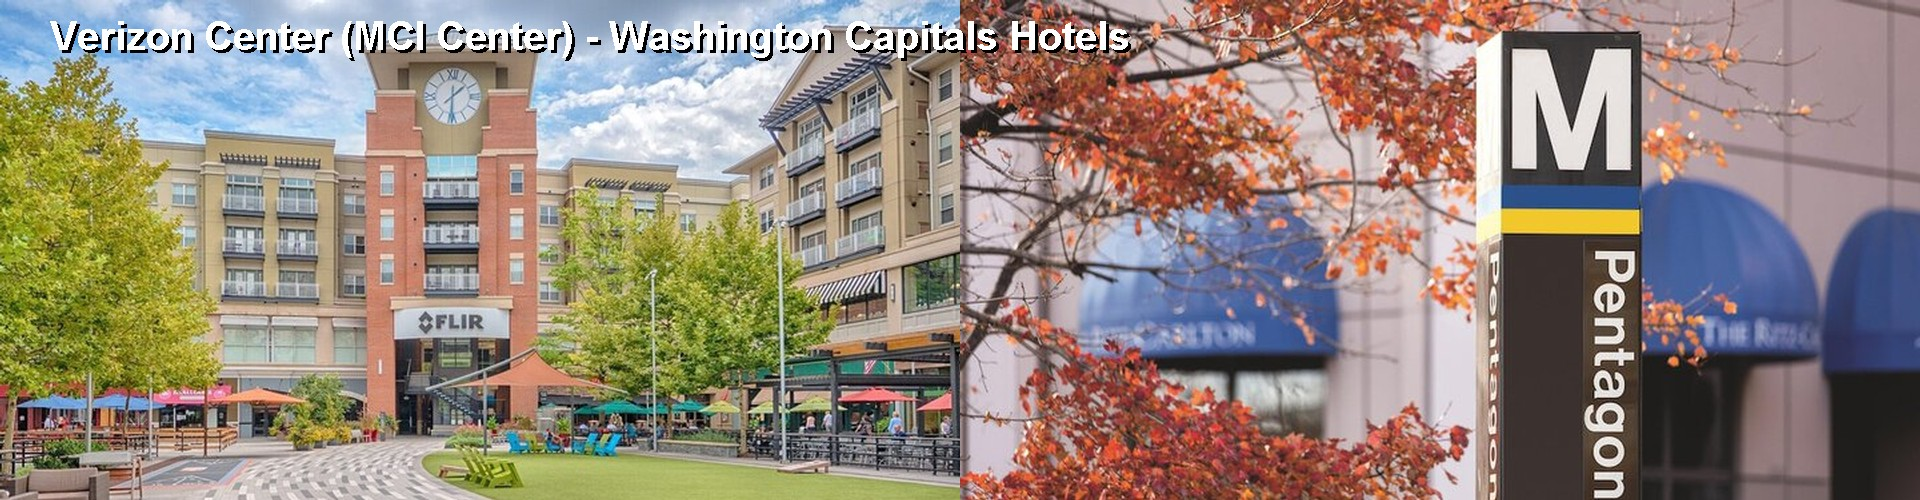 5 Best Hotels near Verizon Center (MCI Center) - Washington Capitals